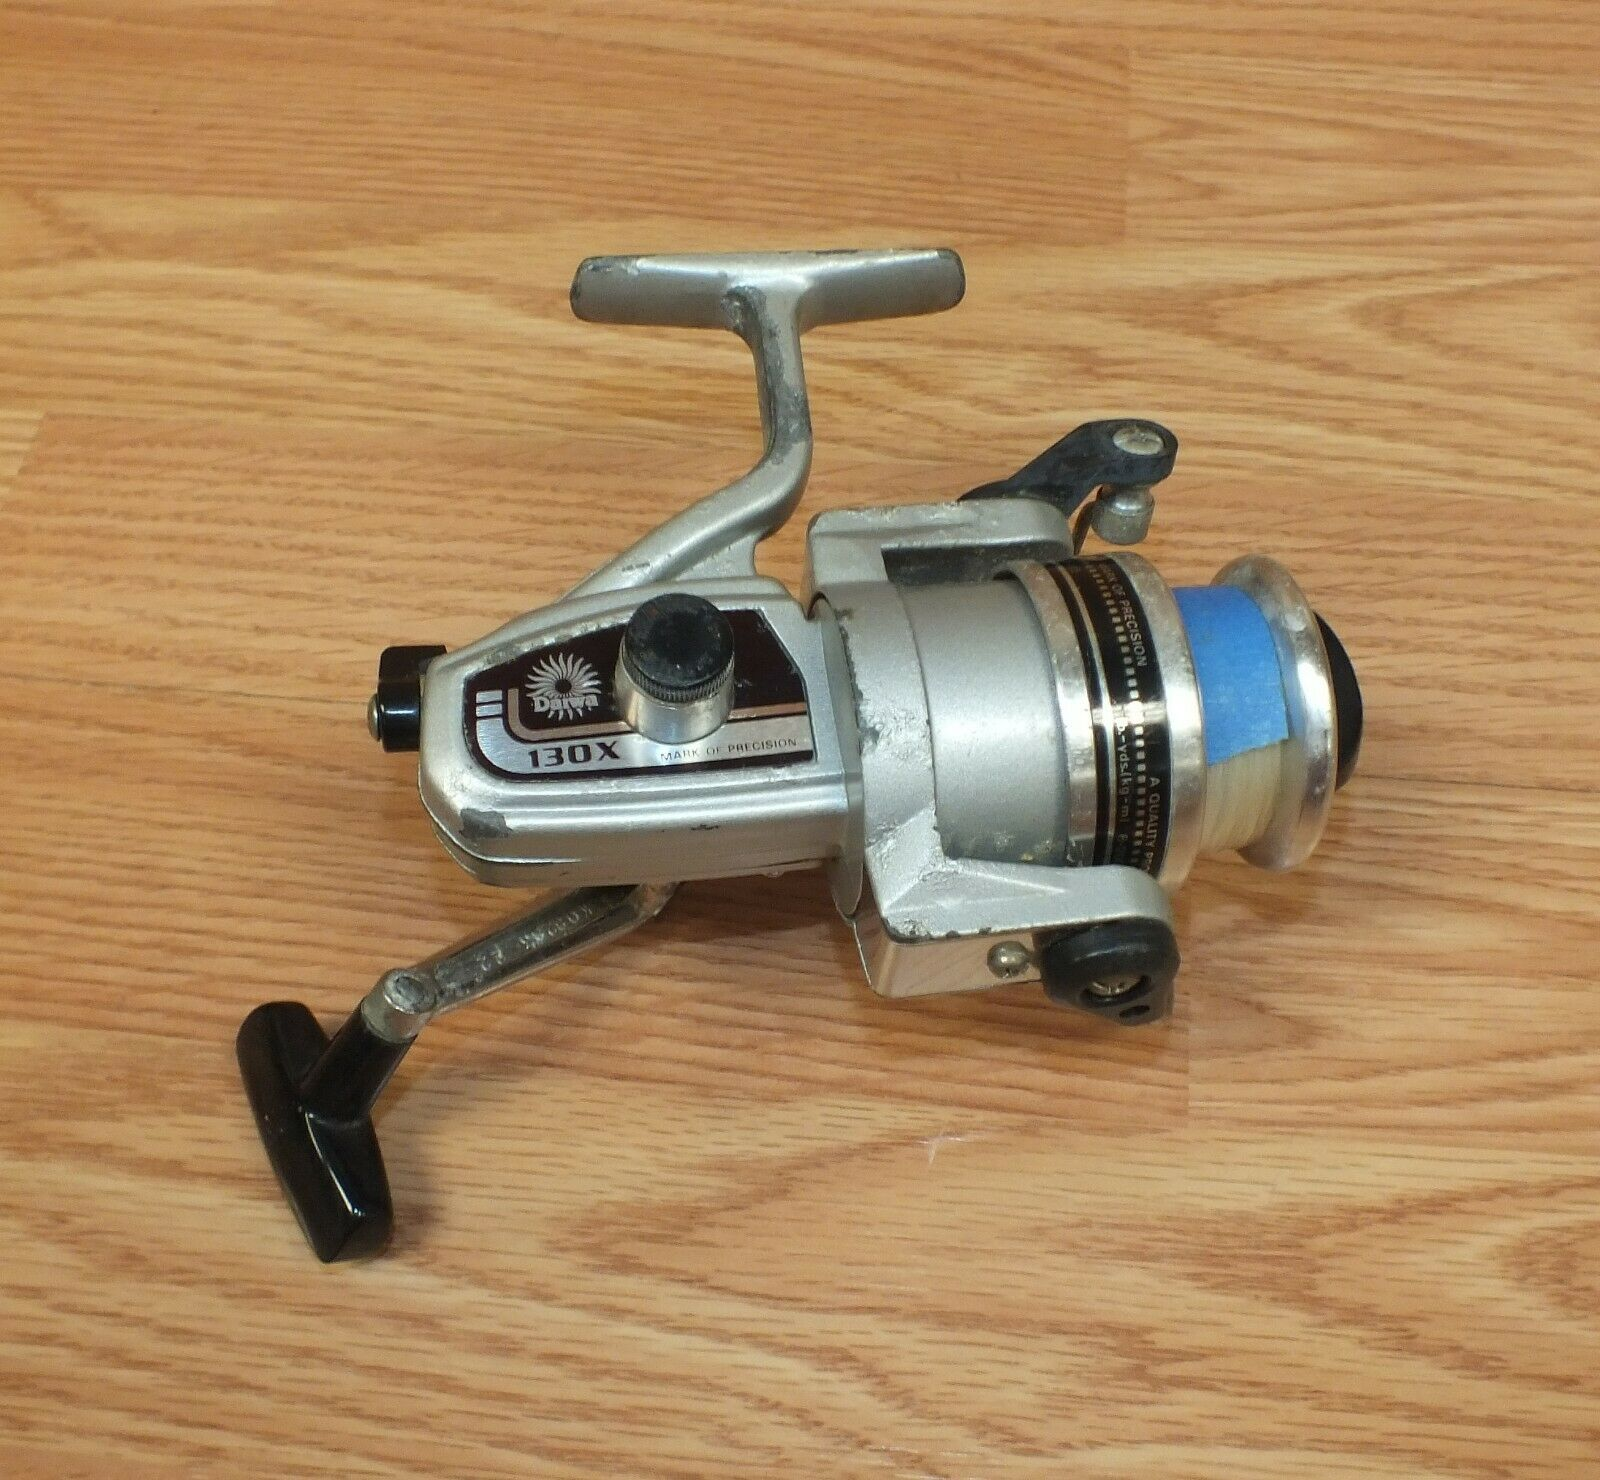 UNTESTED Vintage Daiwa 130X Open Faced Spinning Fishing Reel READ